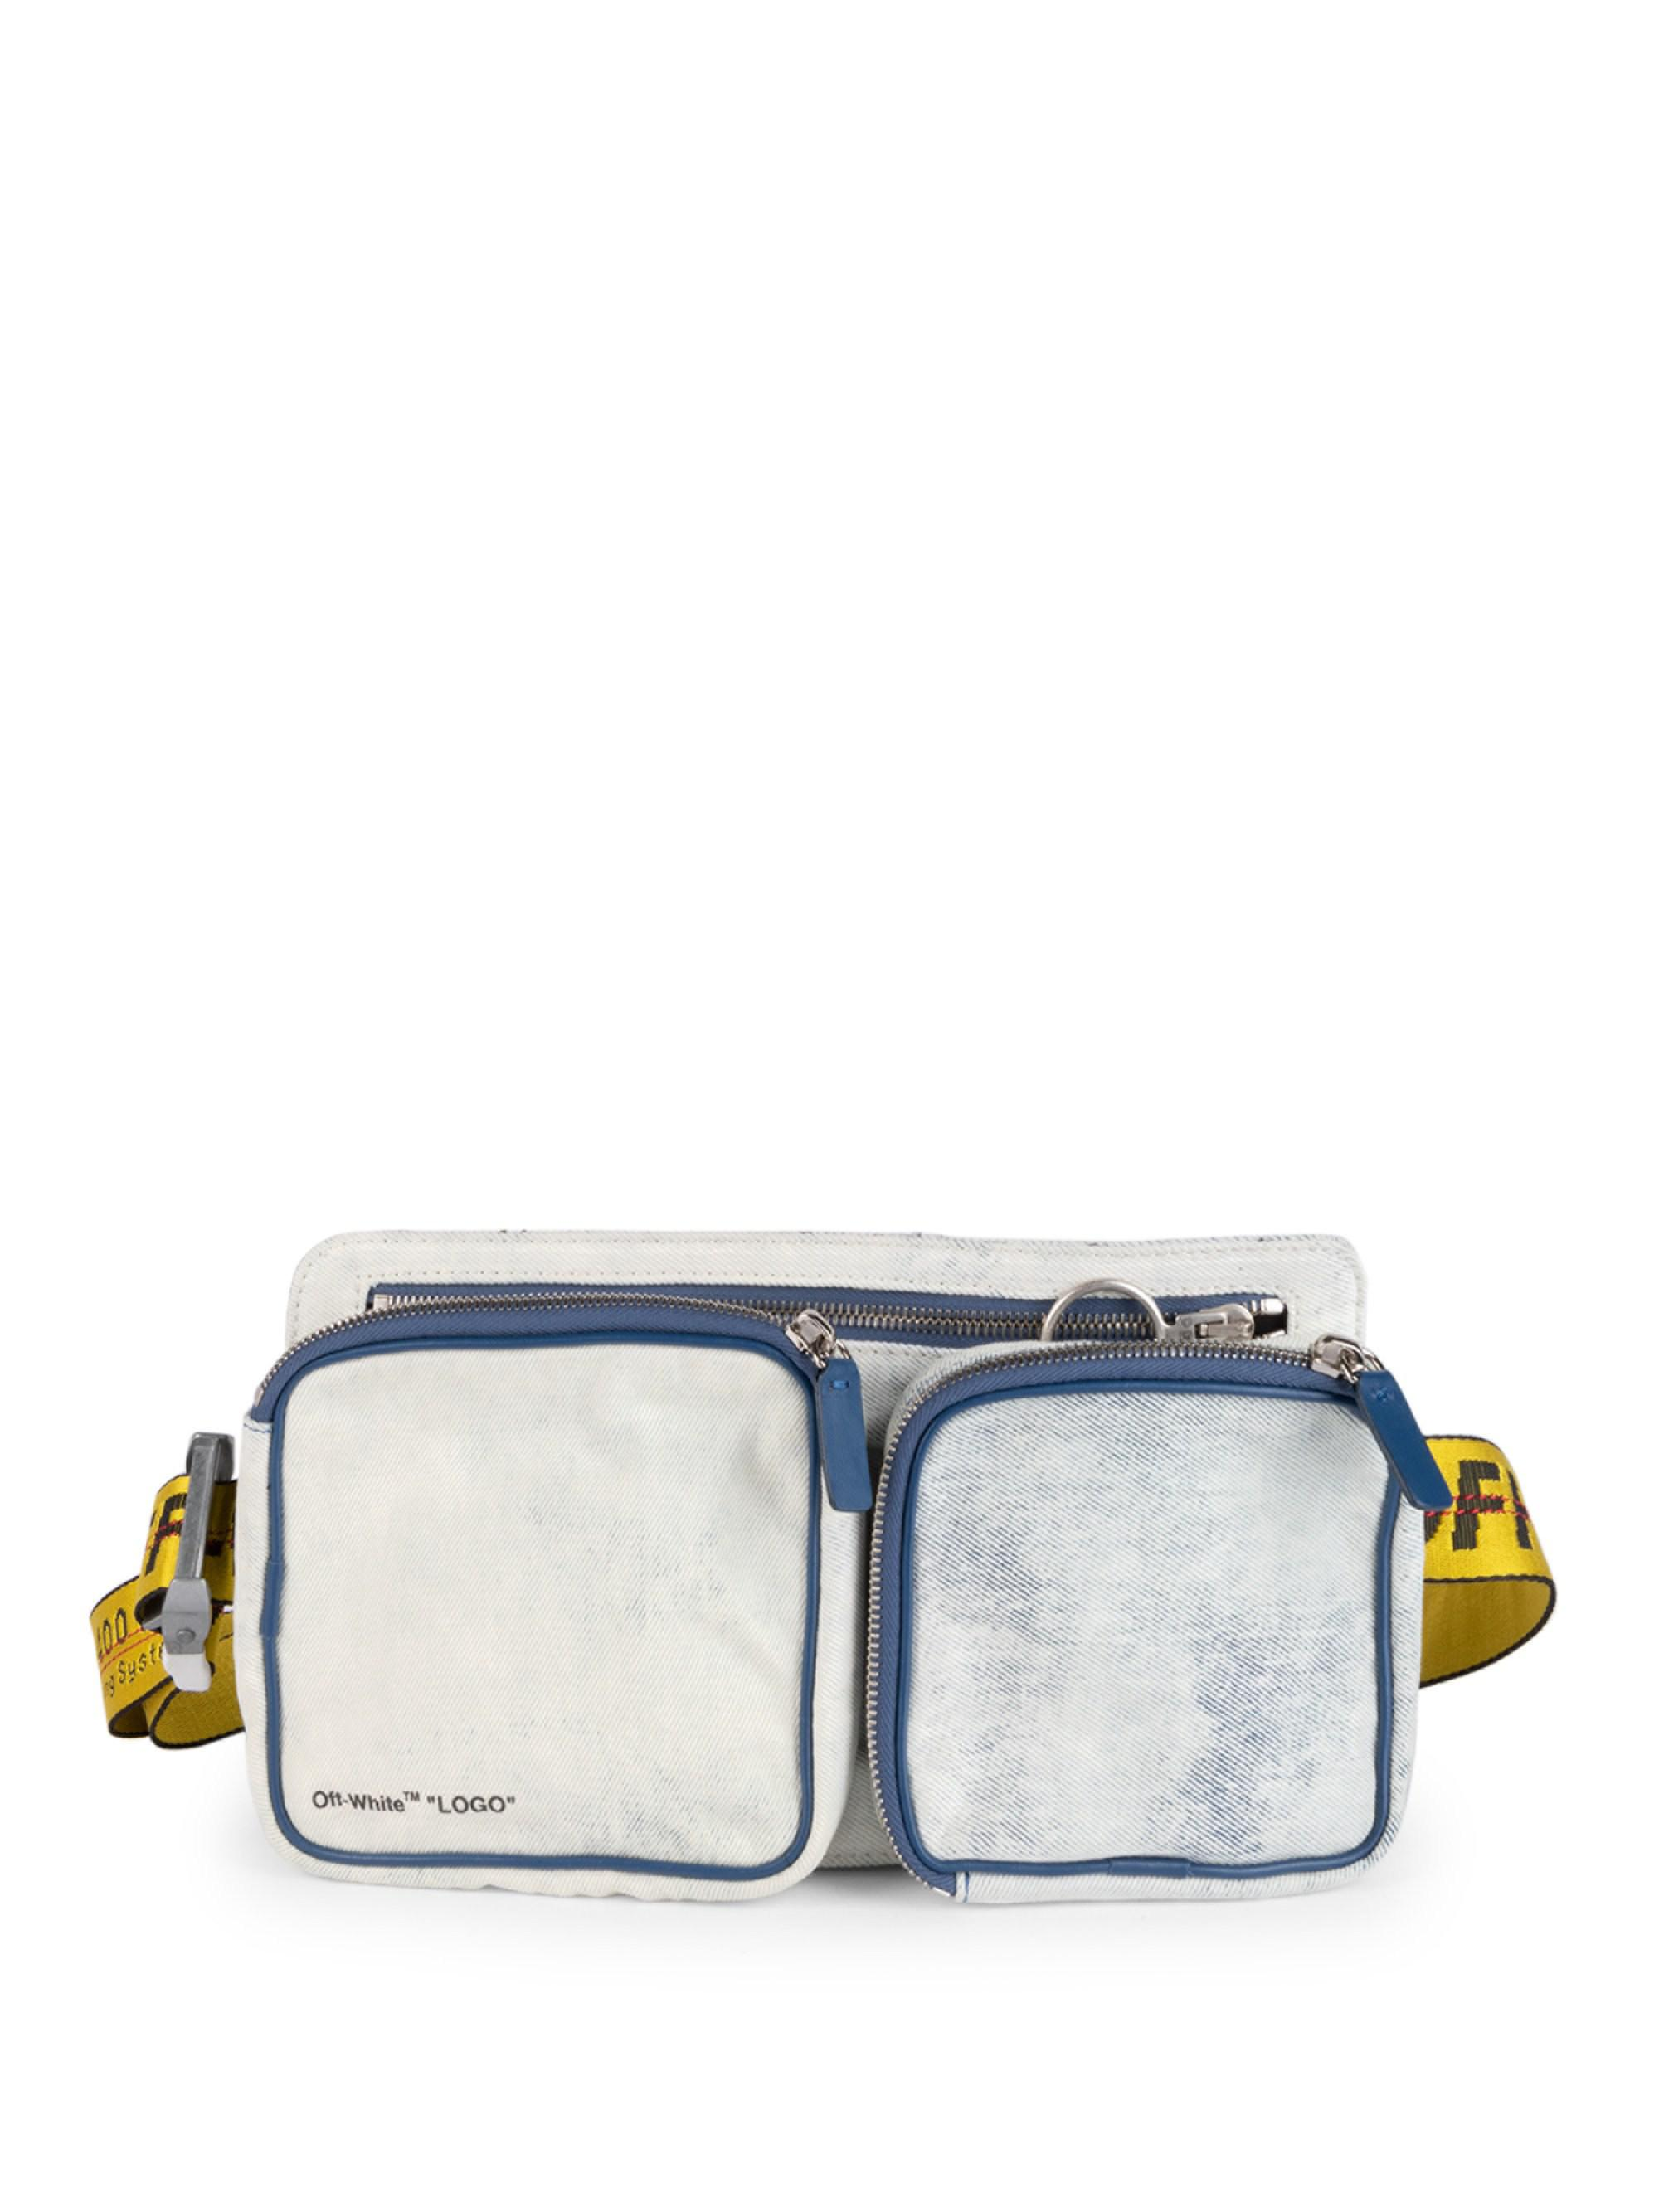 80dca2e7383e2 Off-White c/o Virgil Abloh Blue Bleached Denim Belt Bag for men. View  fullscreen